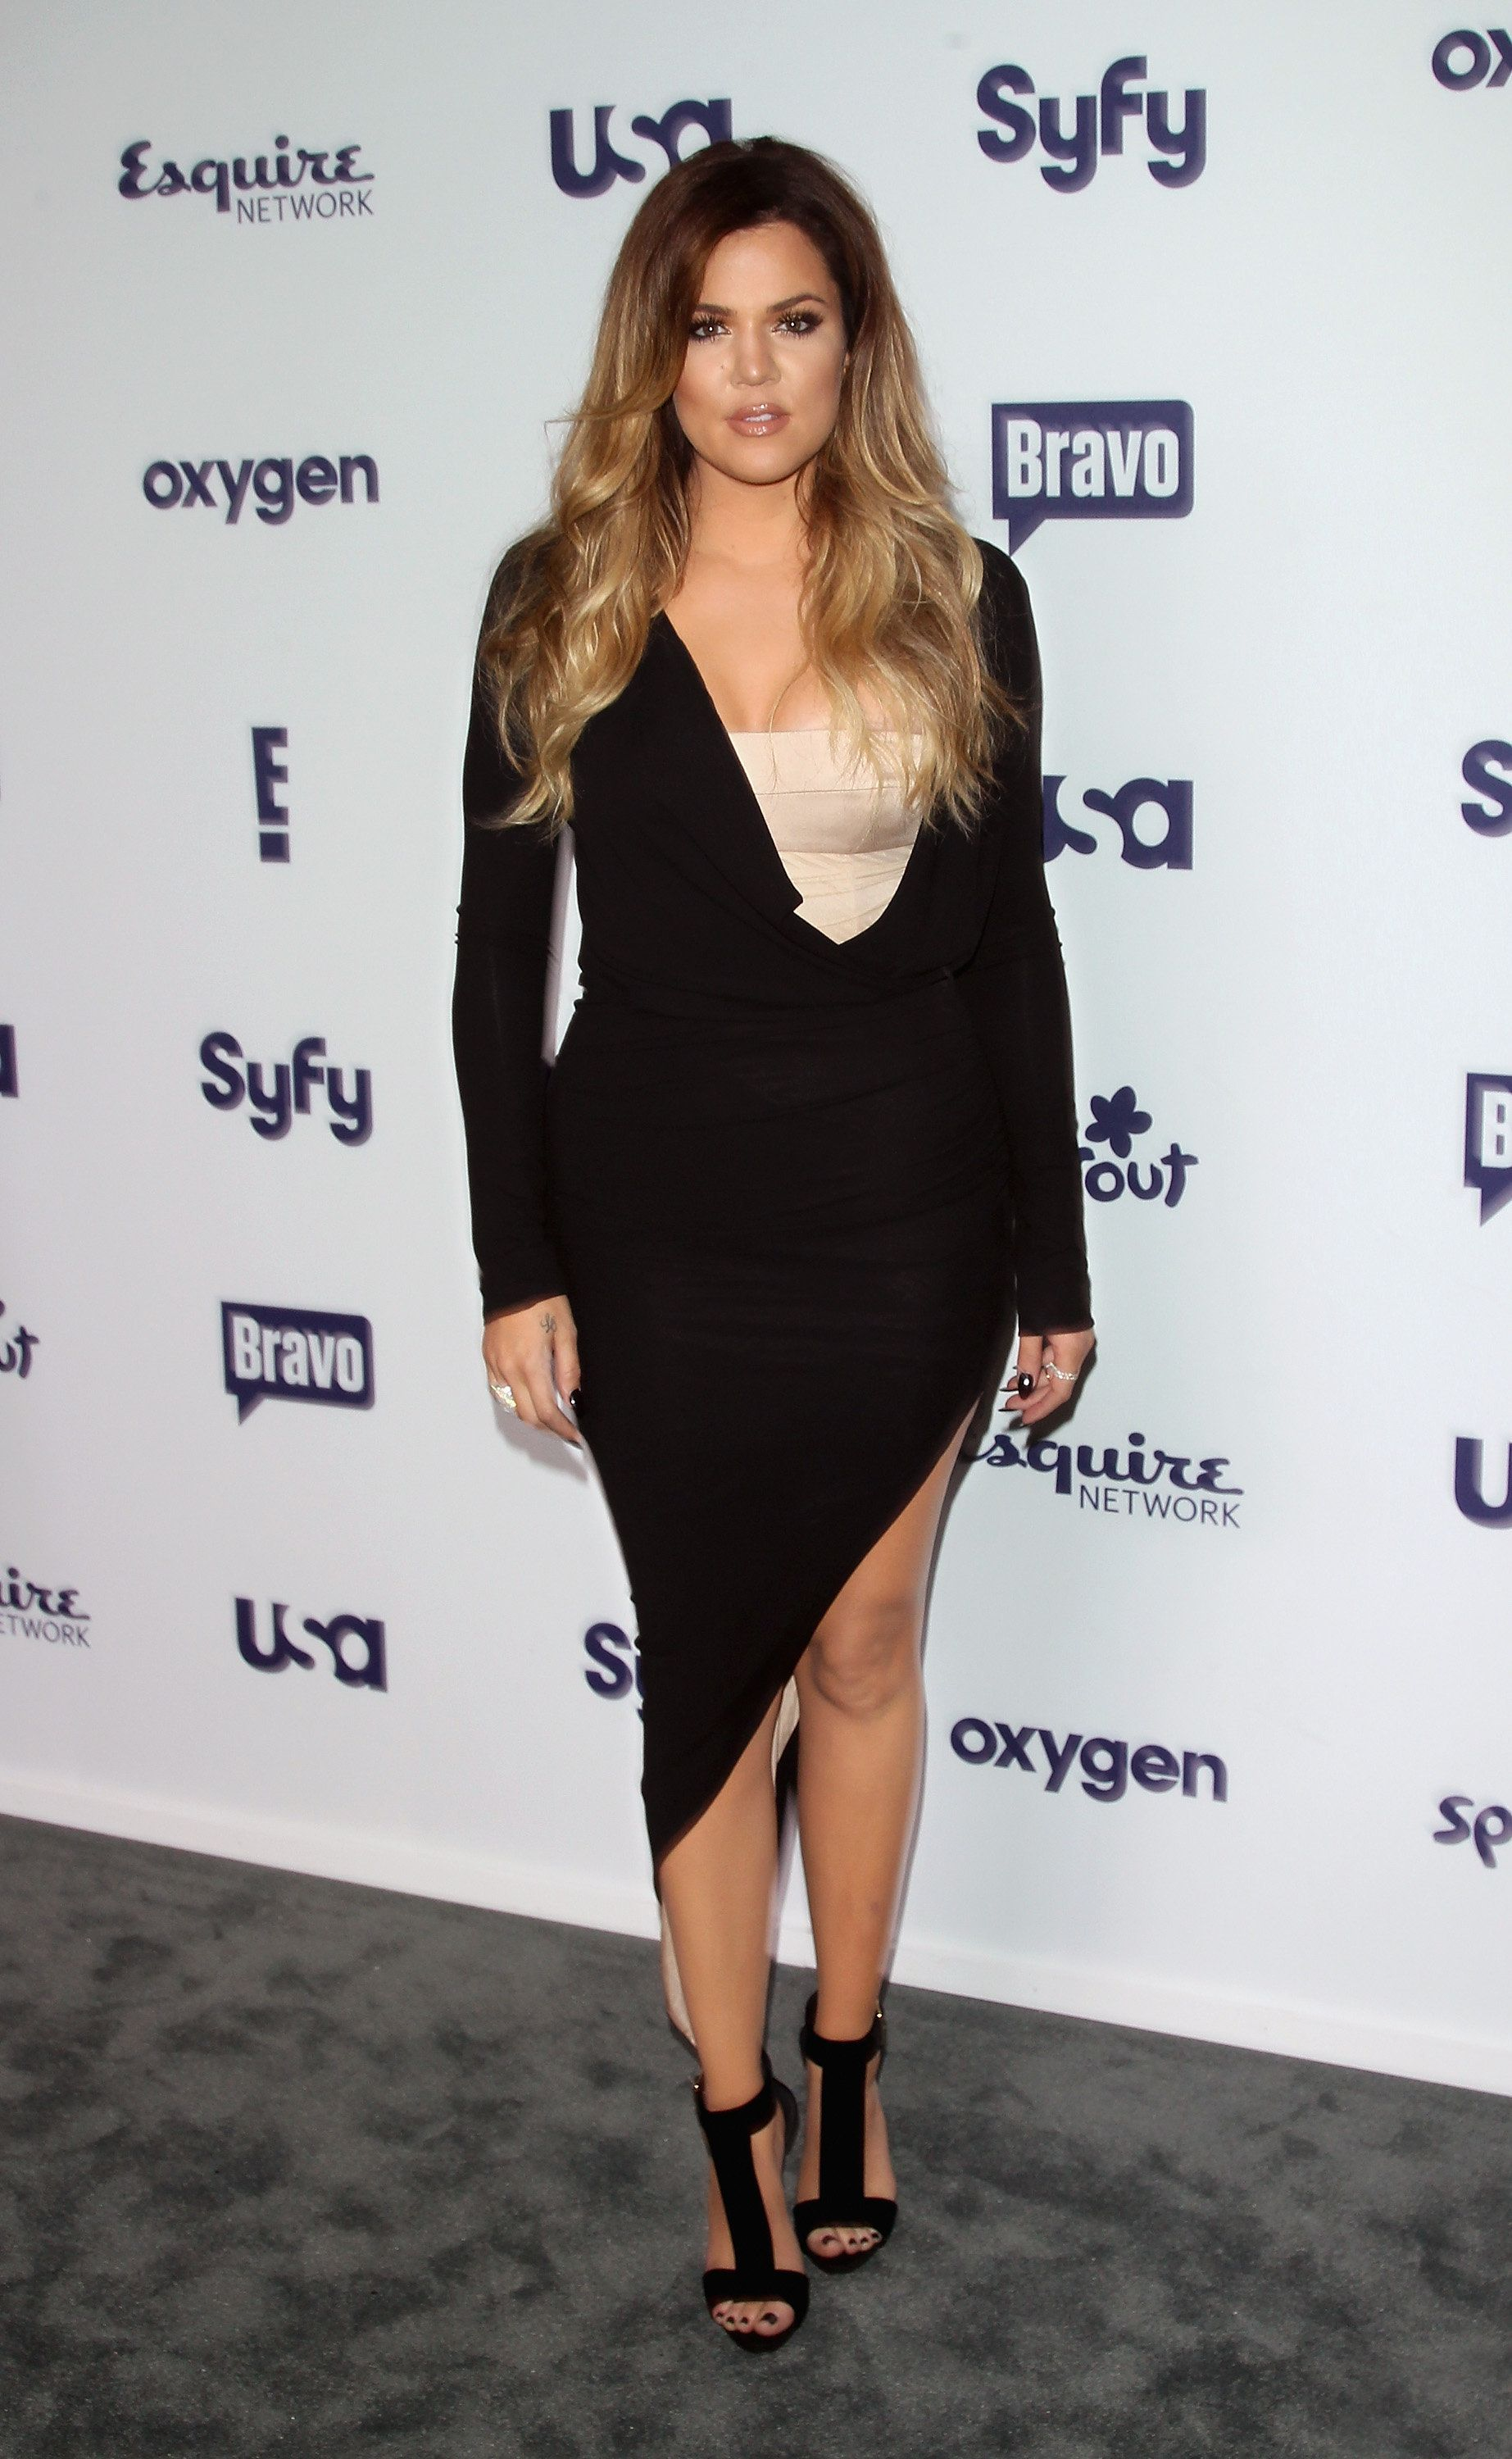 At the 2014 NBCUniversal Cable Entertainment Upfronts at the Jacob K. Javits Convention Center in New York City.